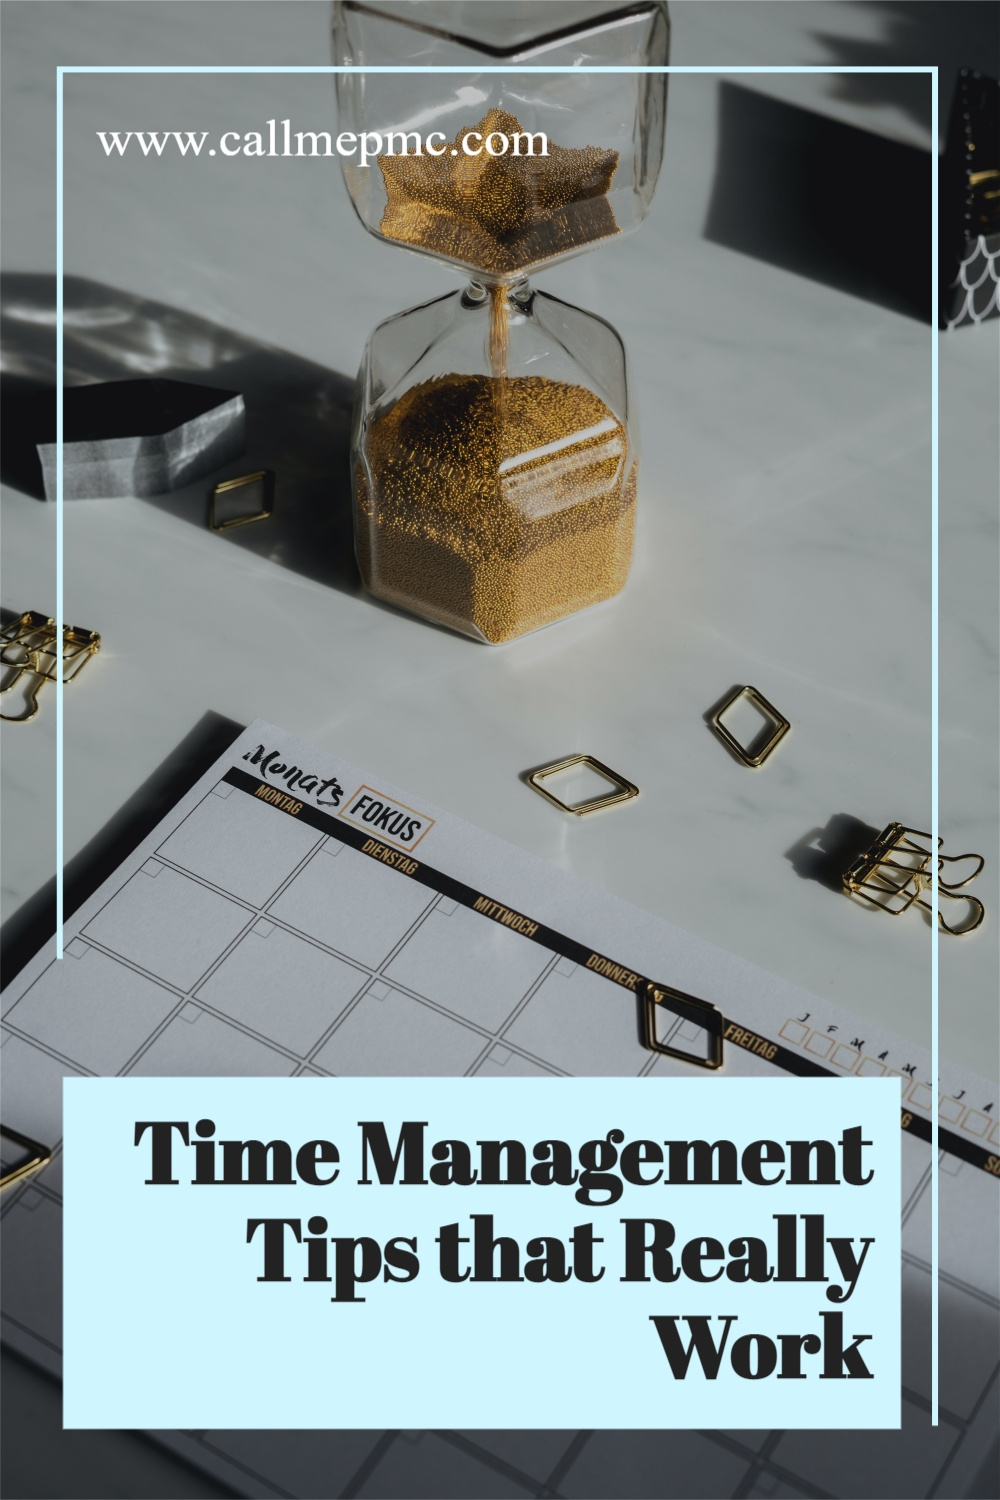 Time Management Tips that really work